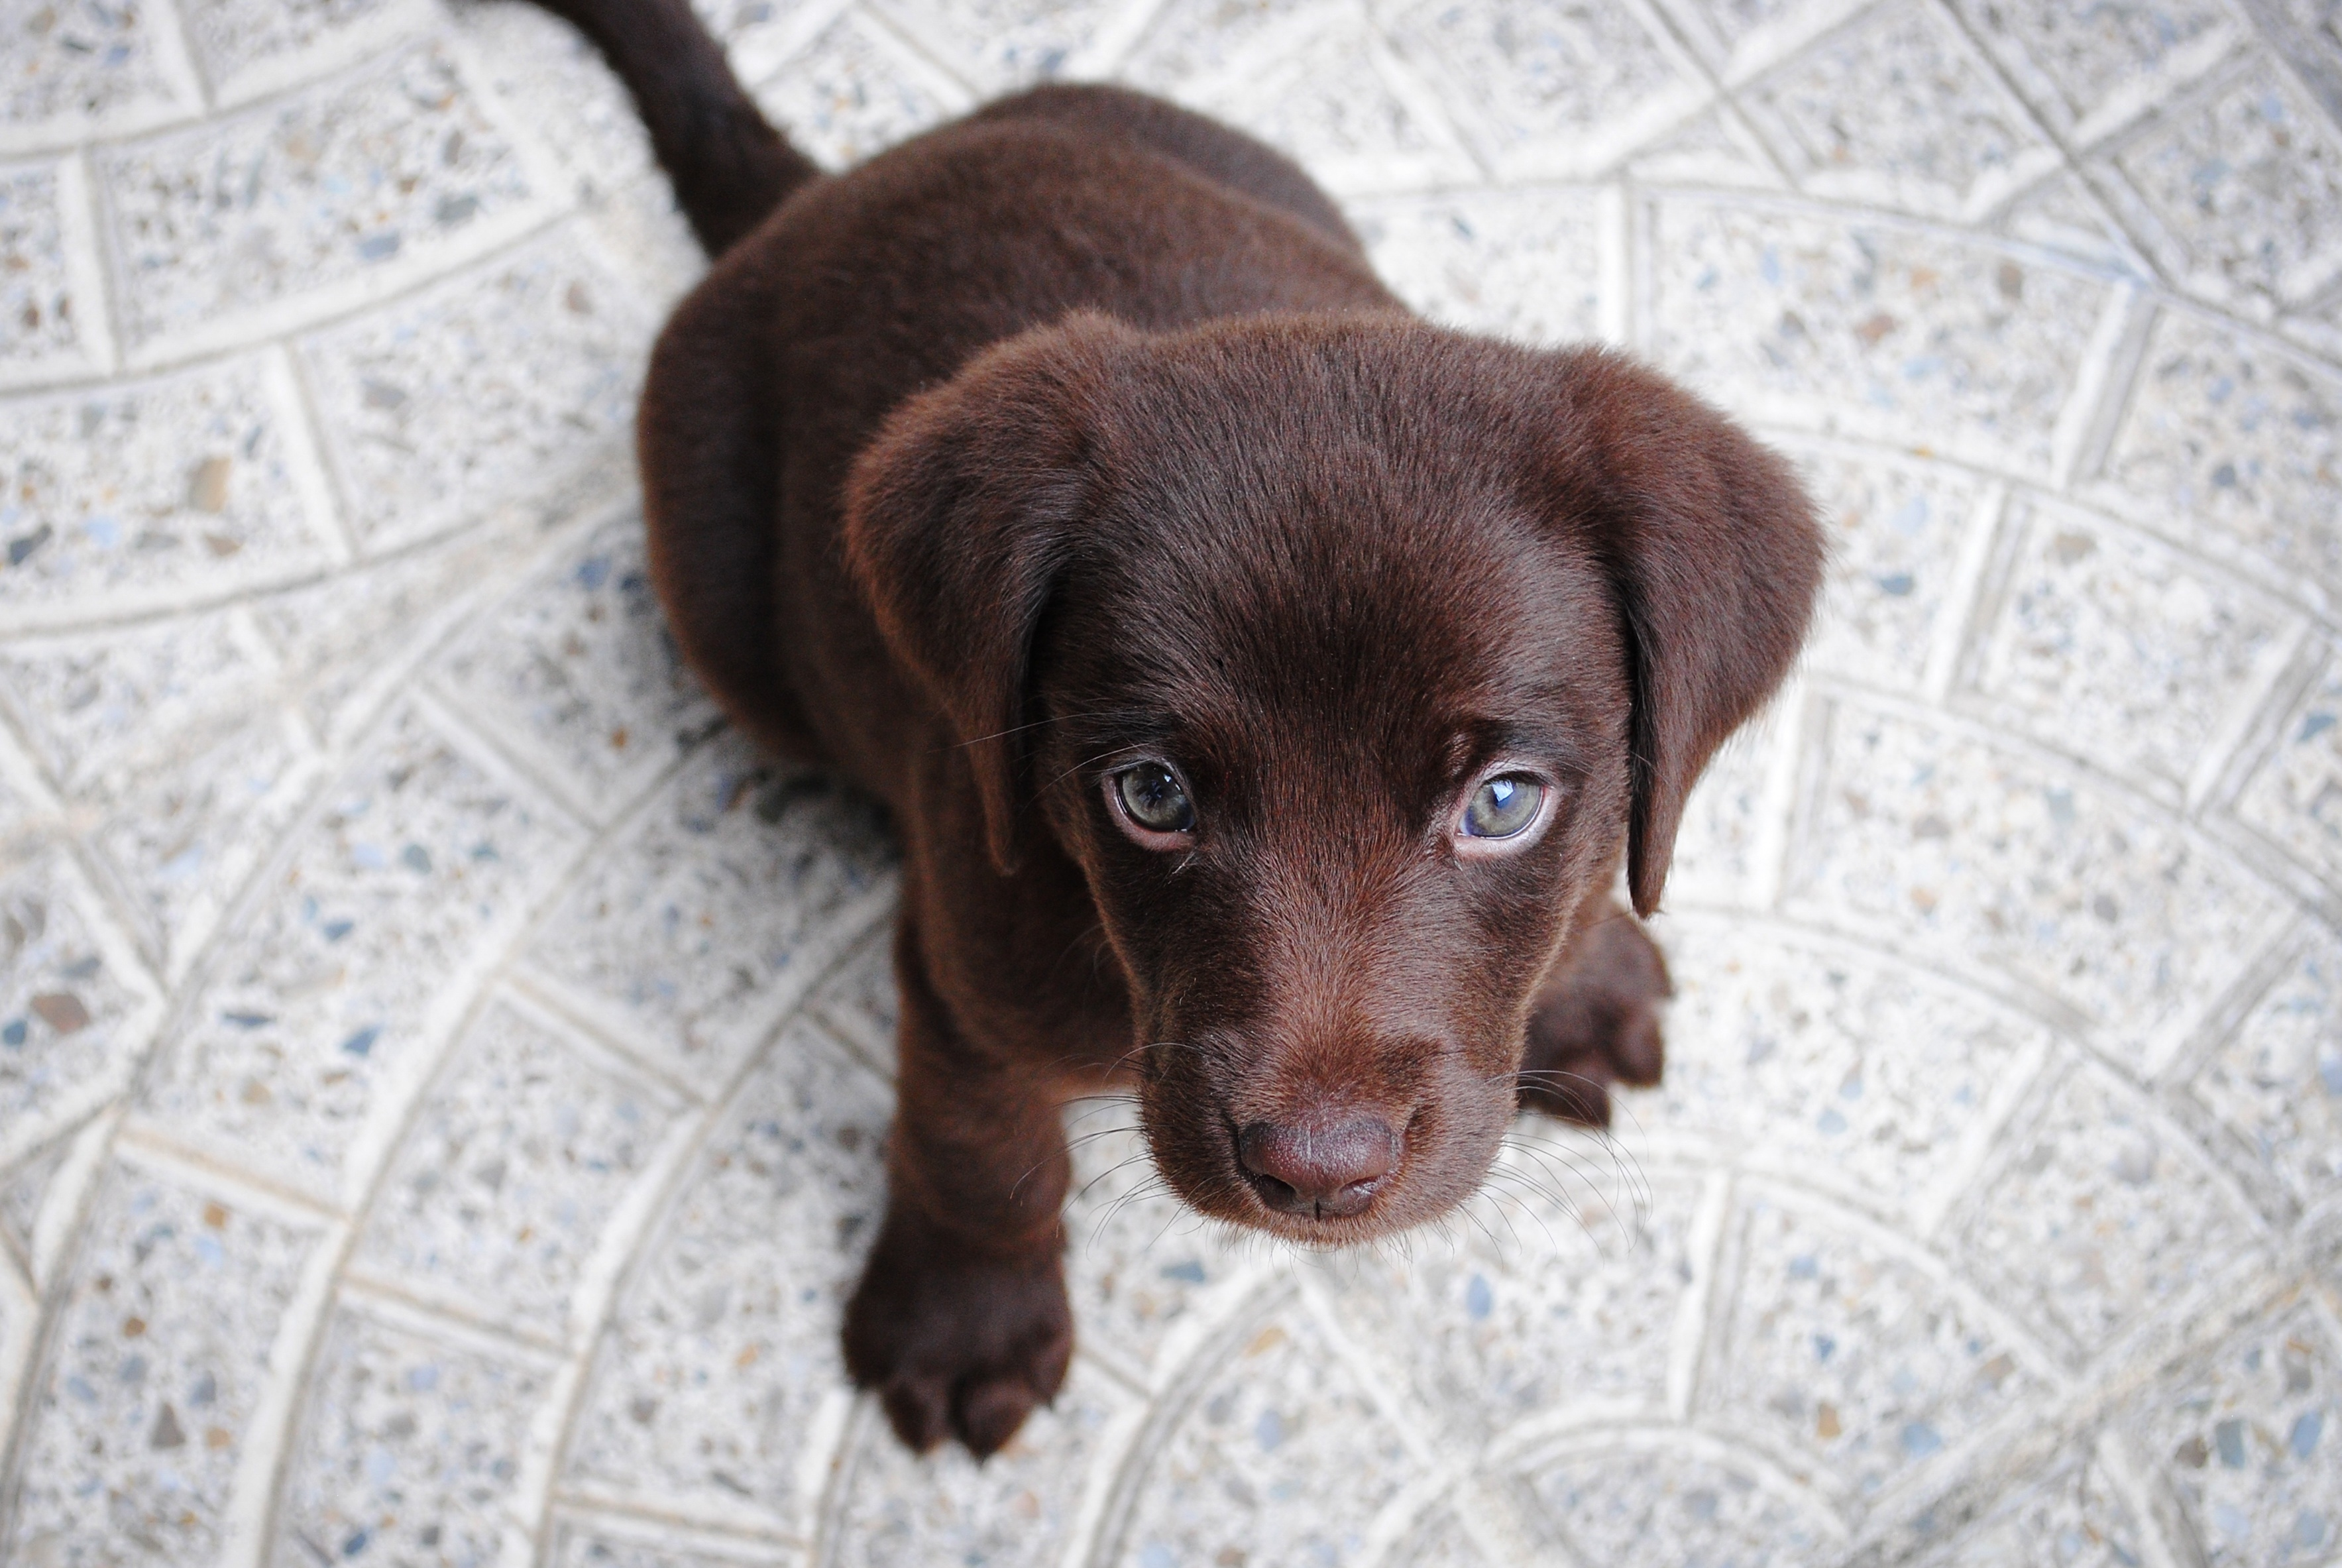 Photos Puppy Labrador Retriever Dogs From above animal Staring puppies dog Glance Animals